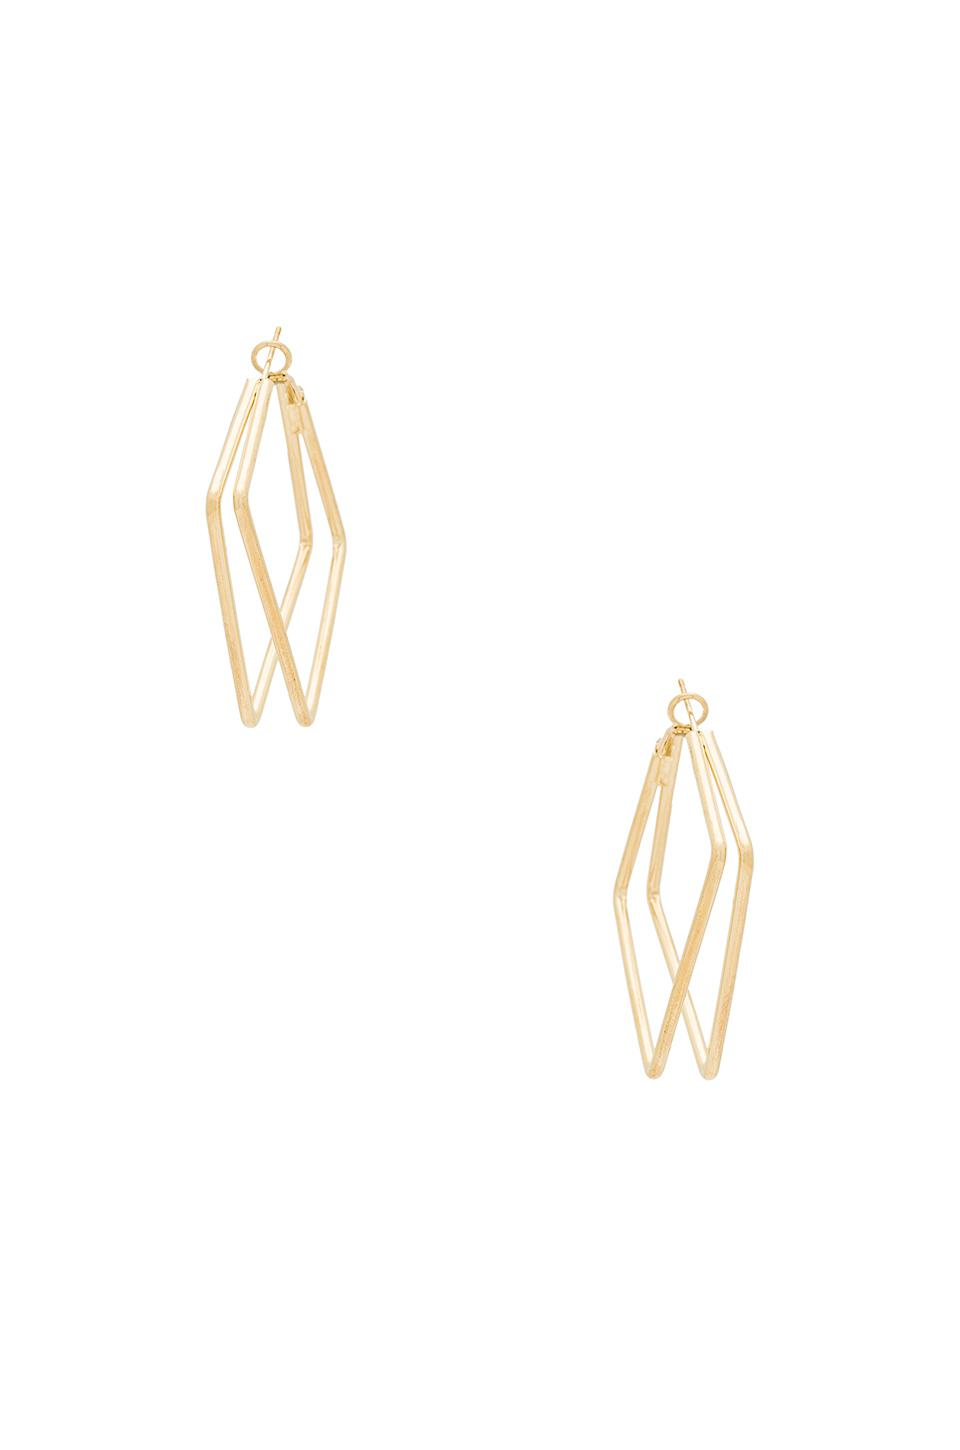 8 Other Reasons Squared Hoops In Metallic Gold.